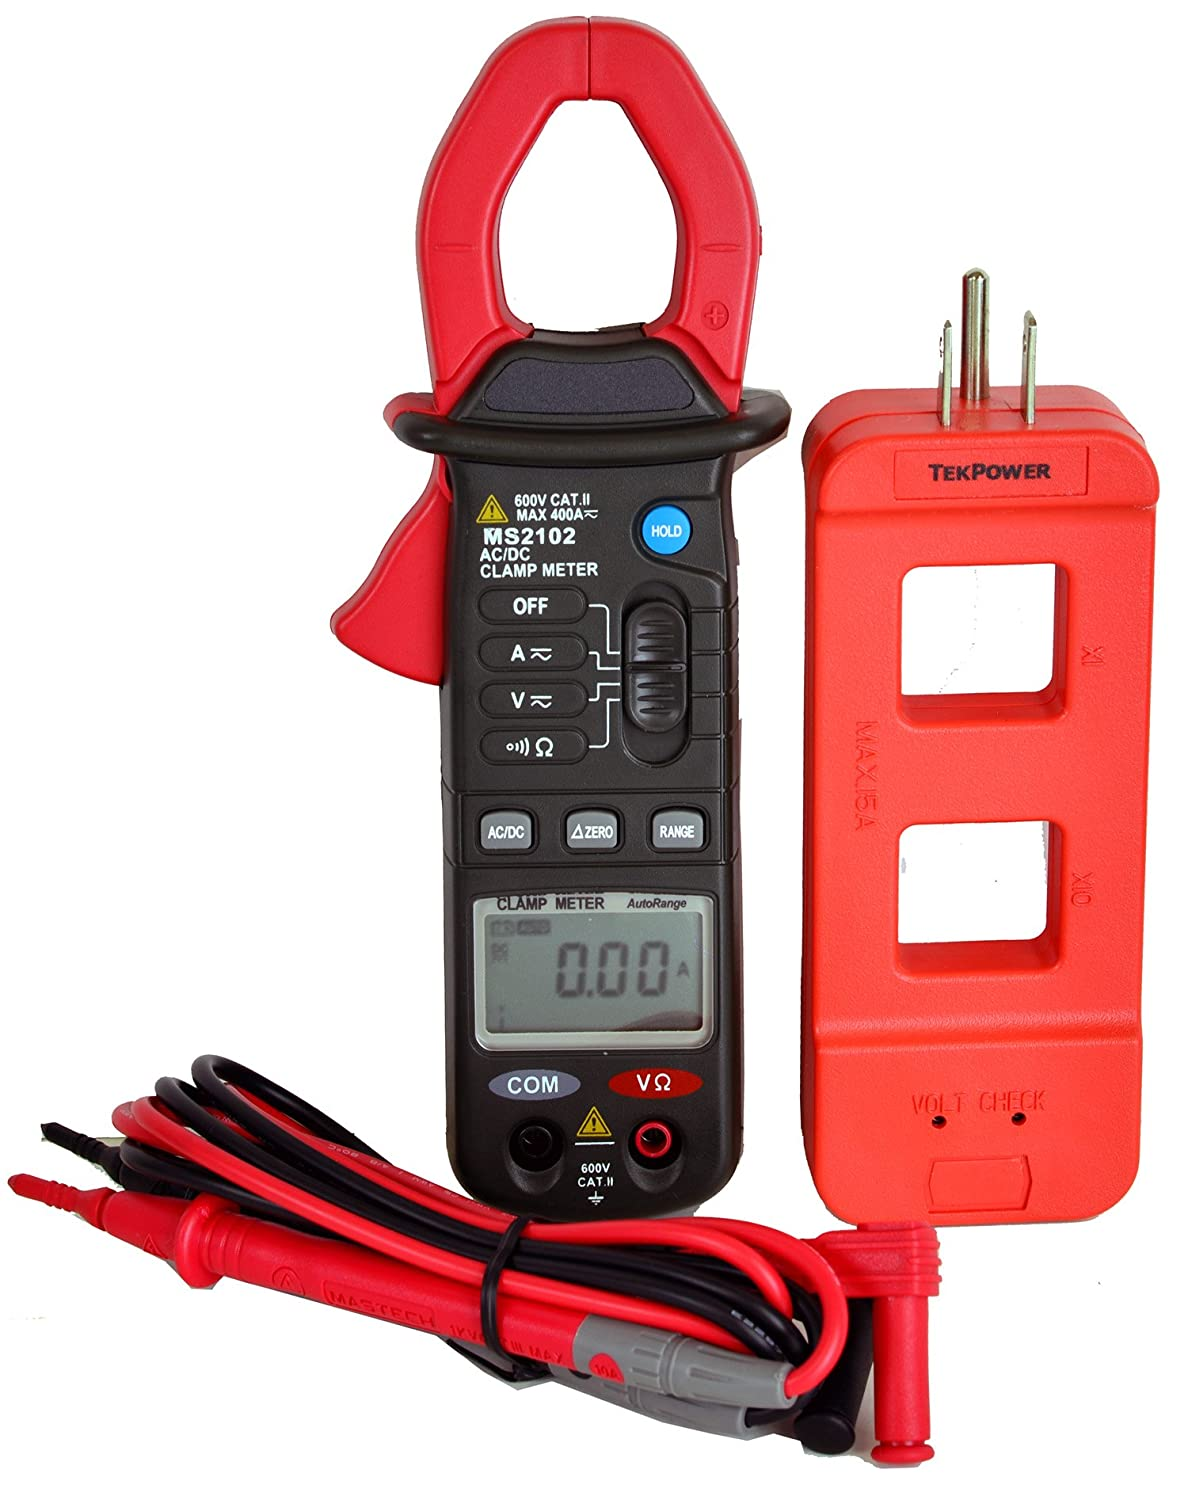 Mastech MS2102  3 3/4 Digits High Resolution and Accuracy Auto-ranging AC/DC Clamp on Meter with A Tekpower High Quality Wire Splitter KTCM0002102